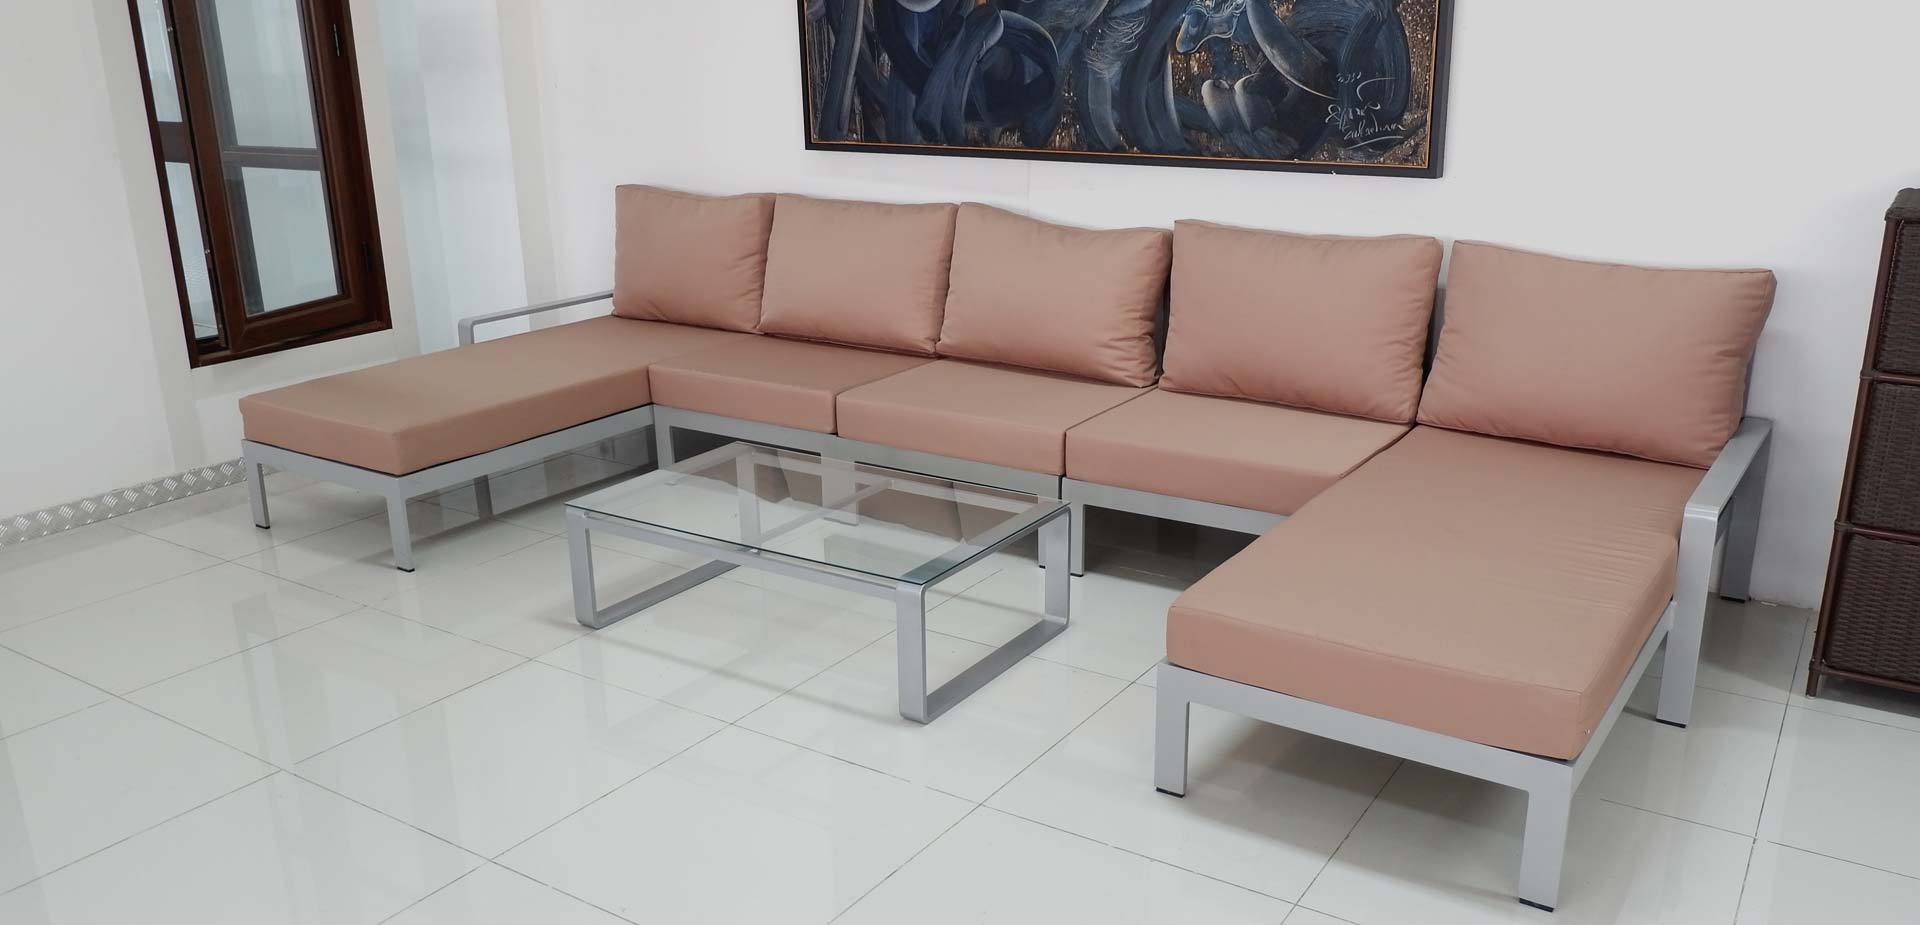 alcomex-indo-aluminium-laquer-furniture-extrusion-finished-goods-furniture-2